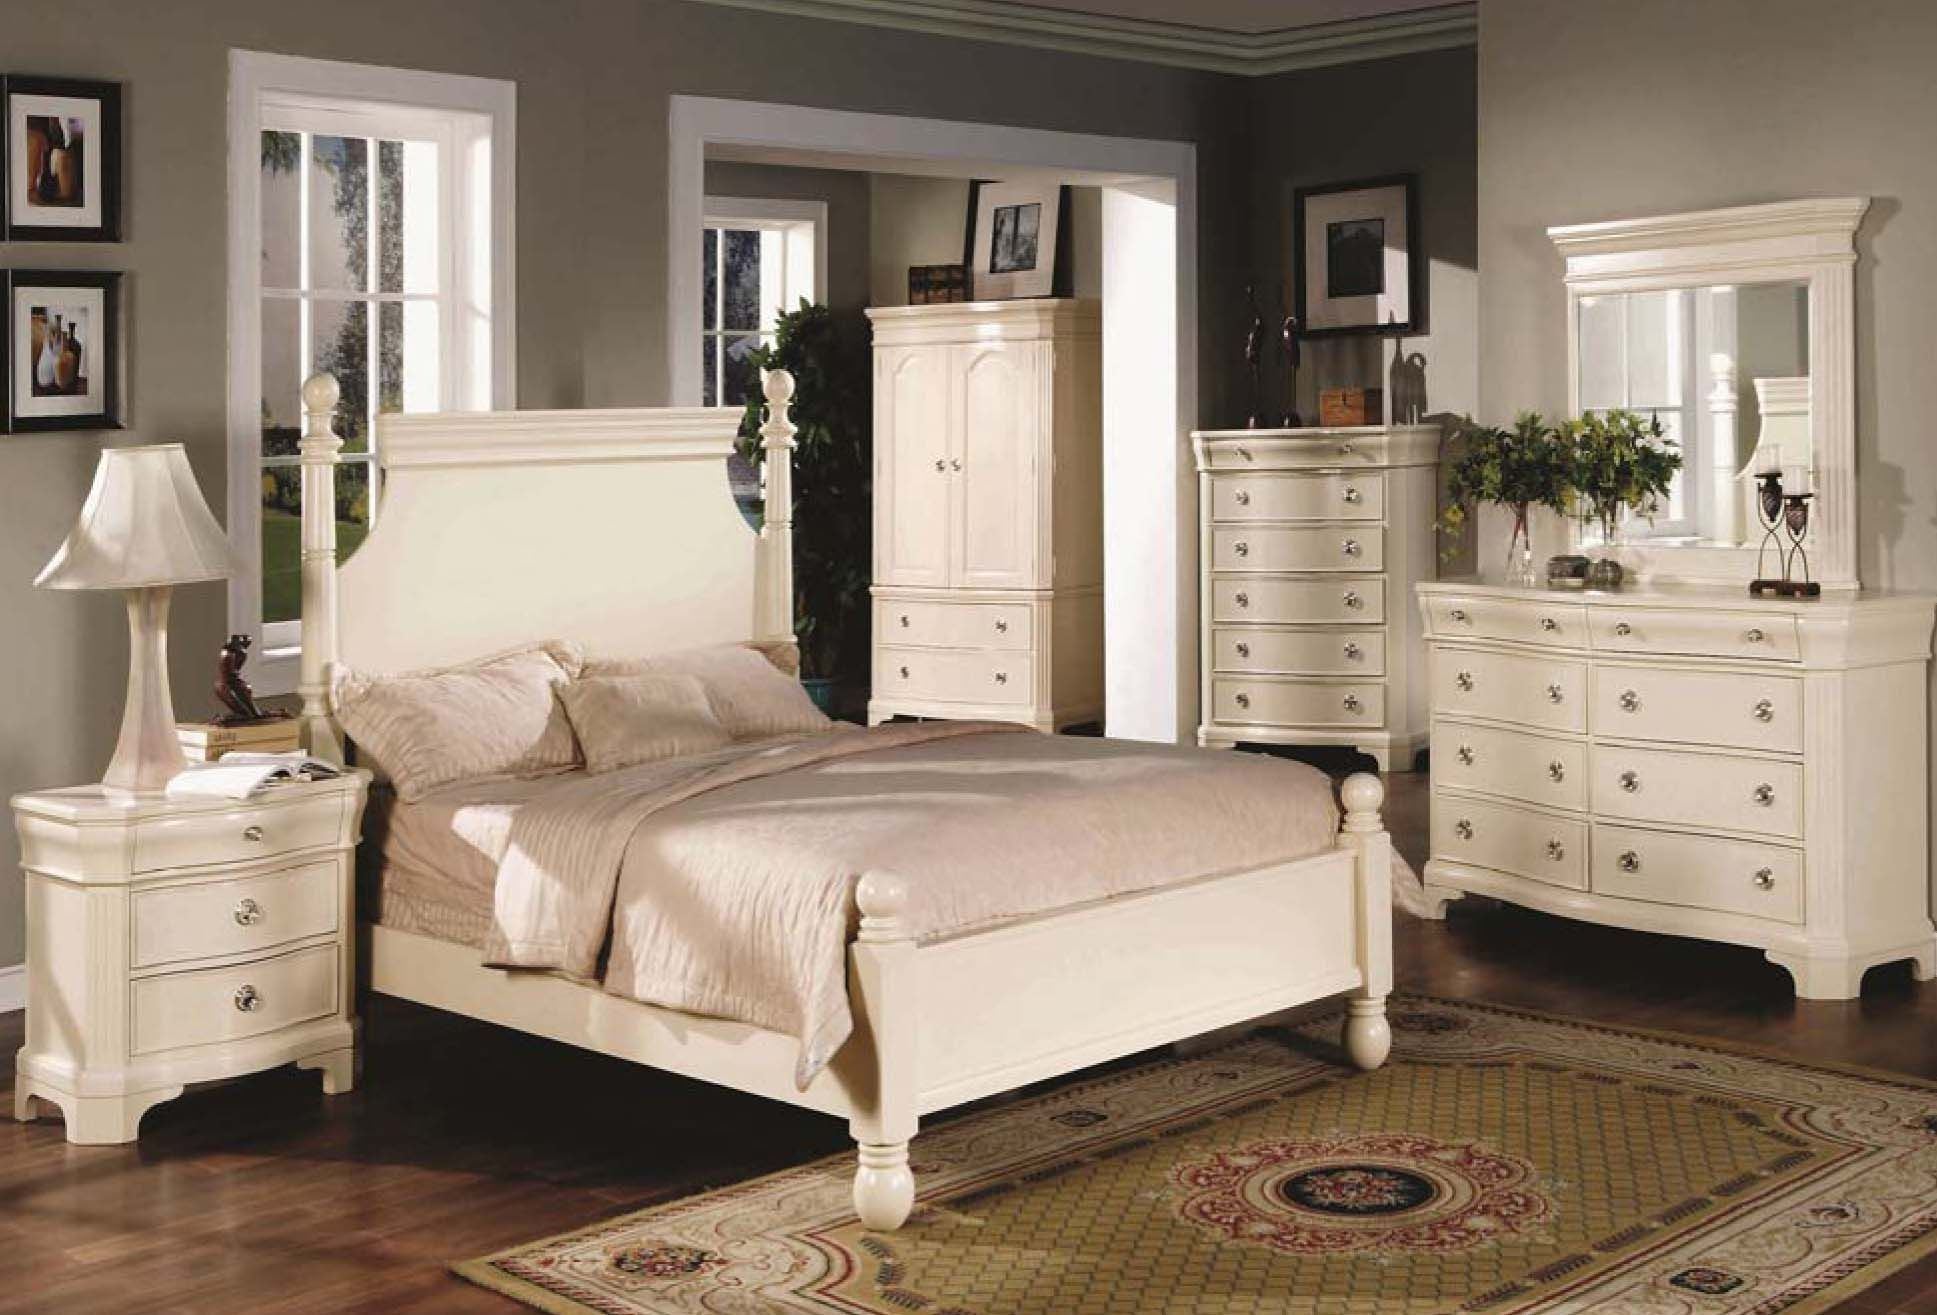 White Washed Bedroom Furniture Sets White Bedroom Furniture Antique White Bedroom Furniture White Washed Bedroom Furniture